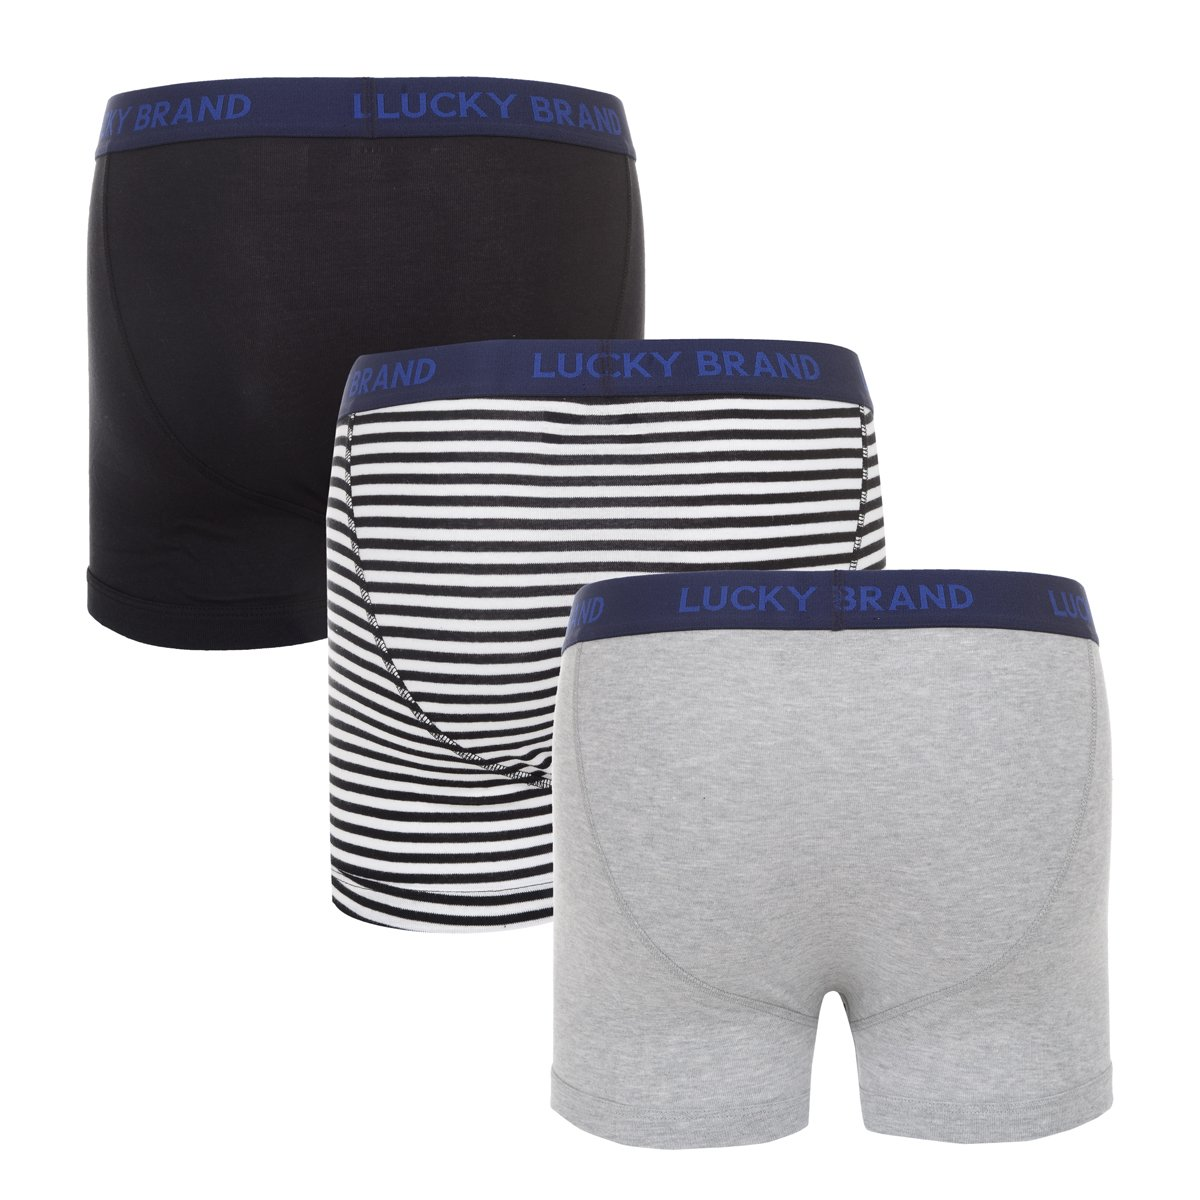 Lucky Brand Mens Cotton Boxer Briefs Underwear with Functional Fly 3 Pack